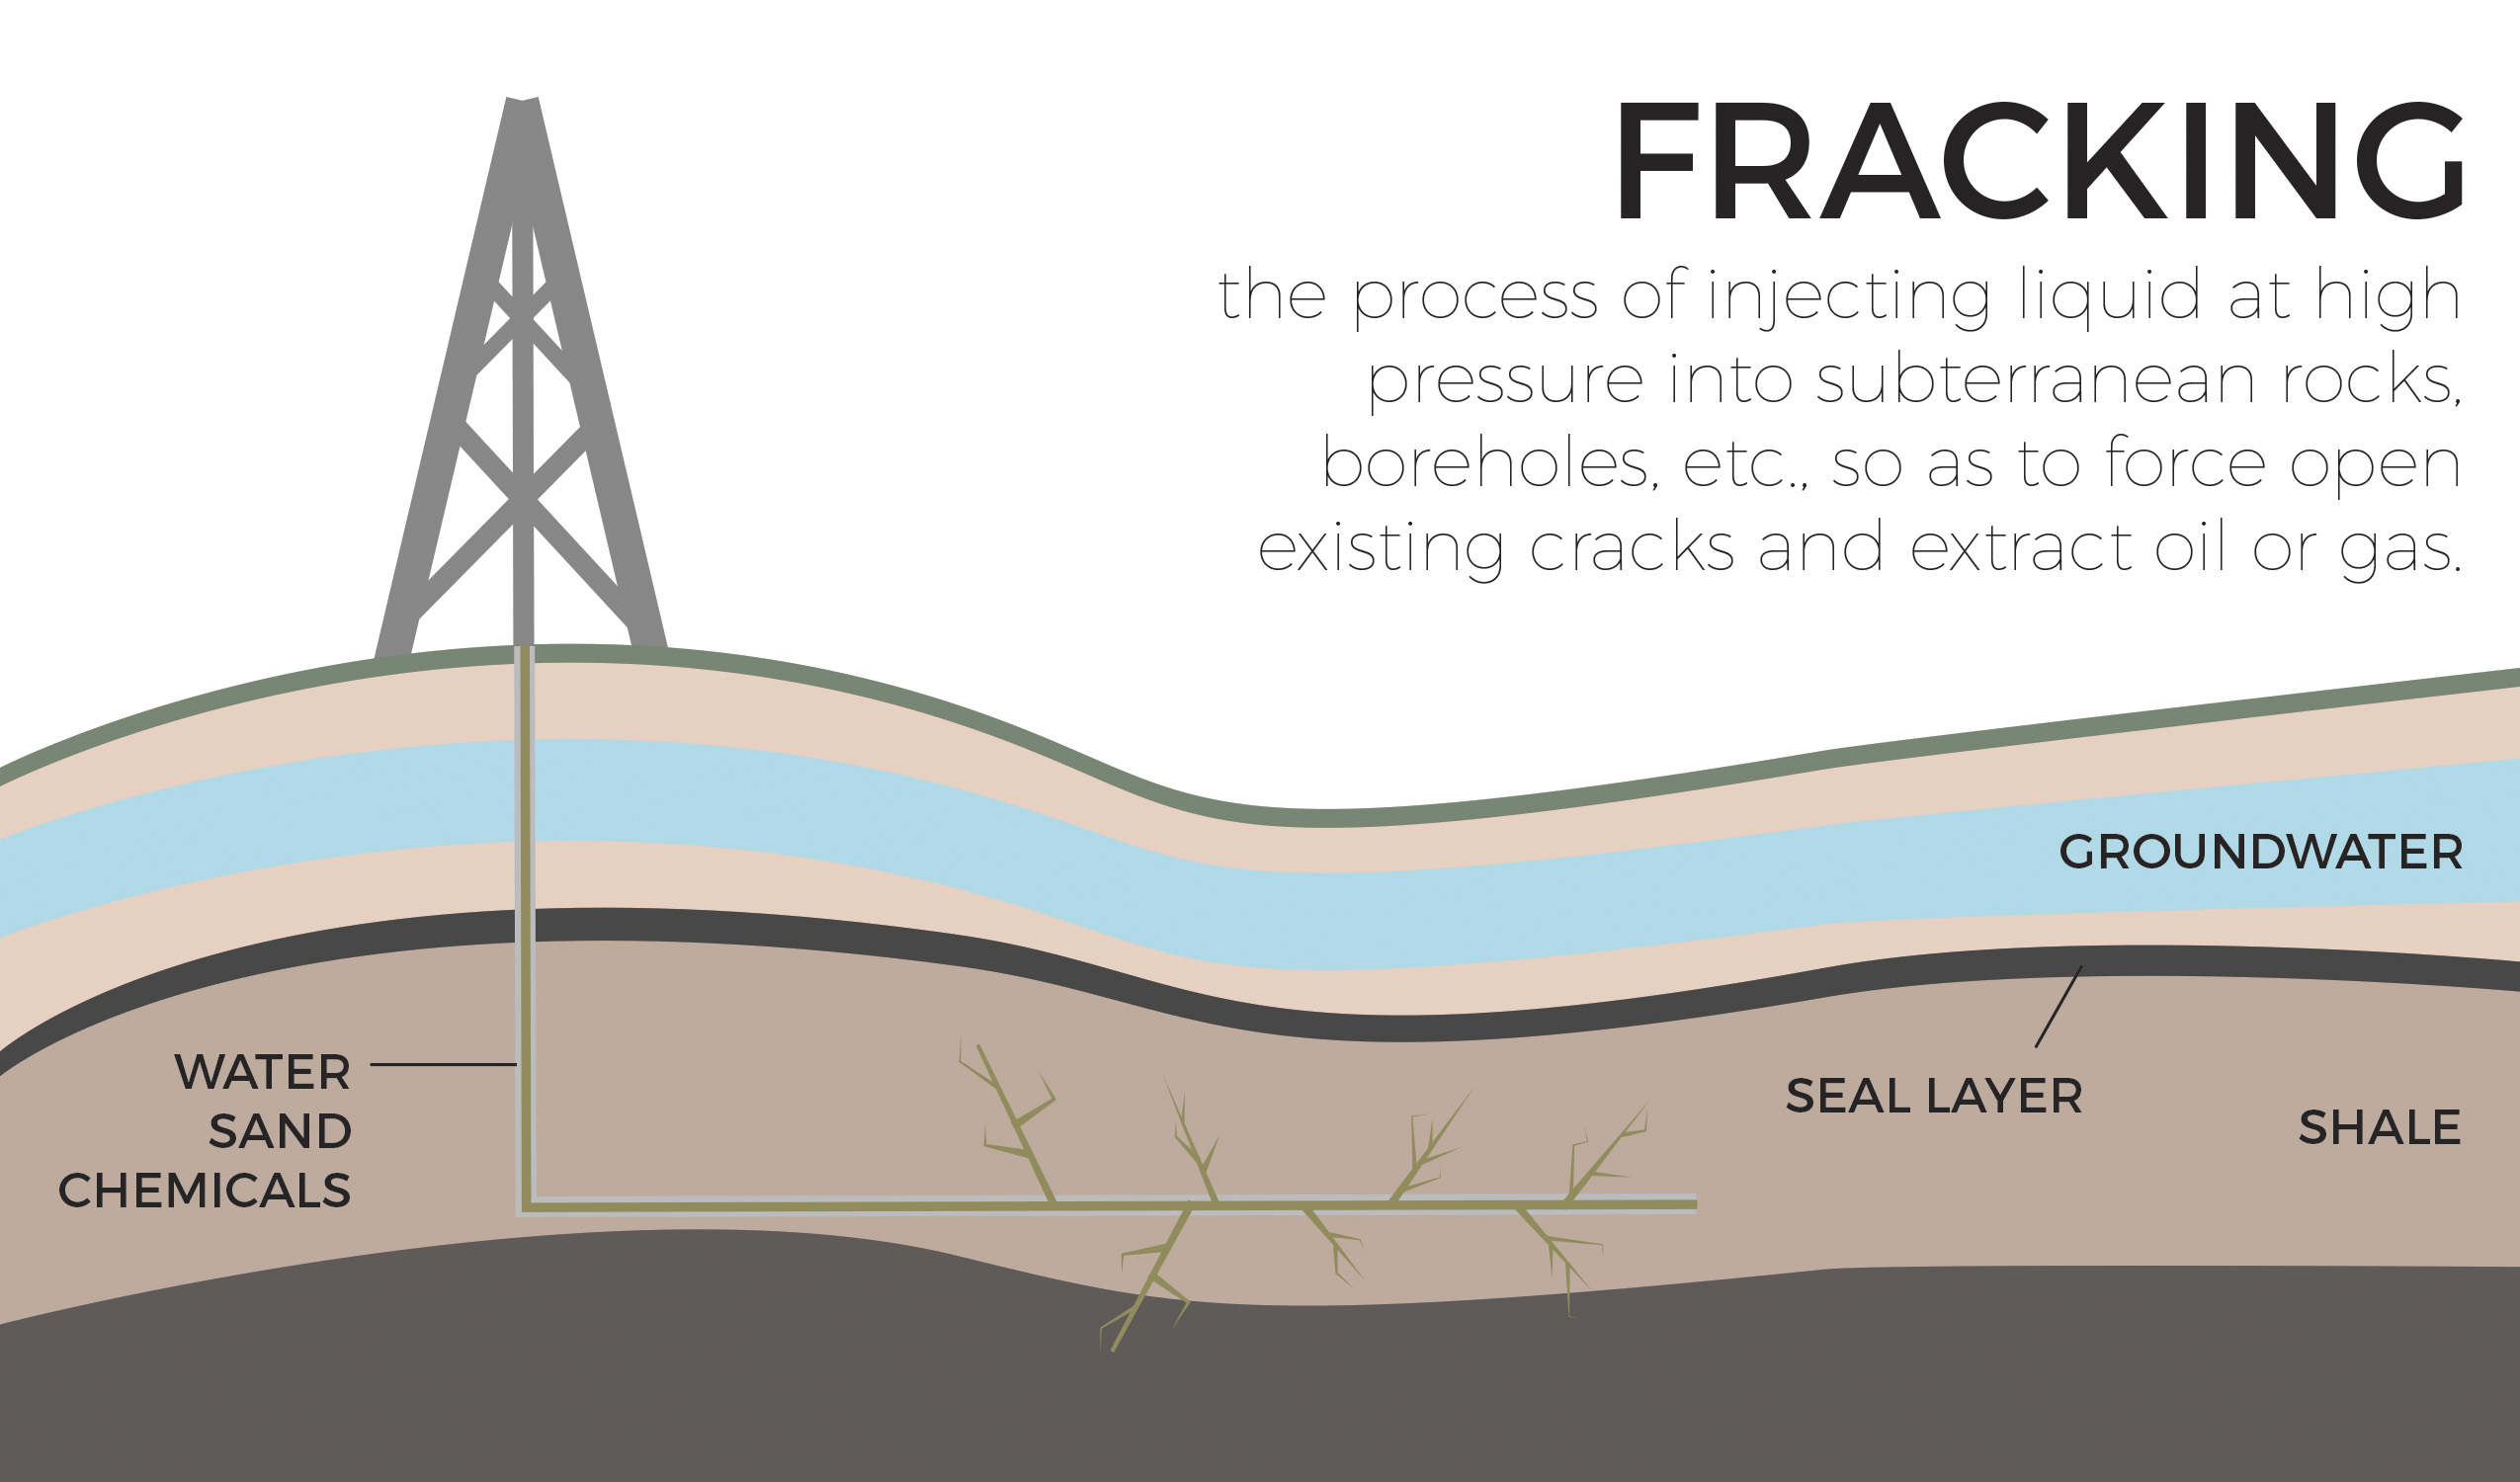 Fracking ~ Focussing on the facts | The Ripple Effect  |Fracking Process